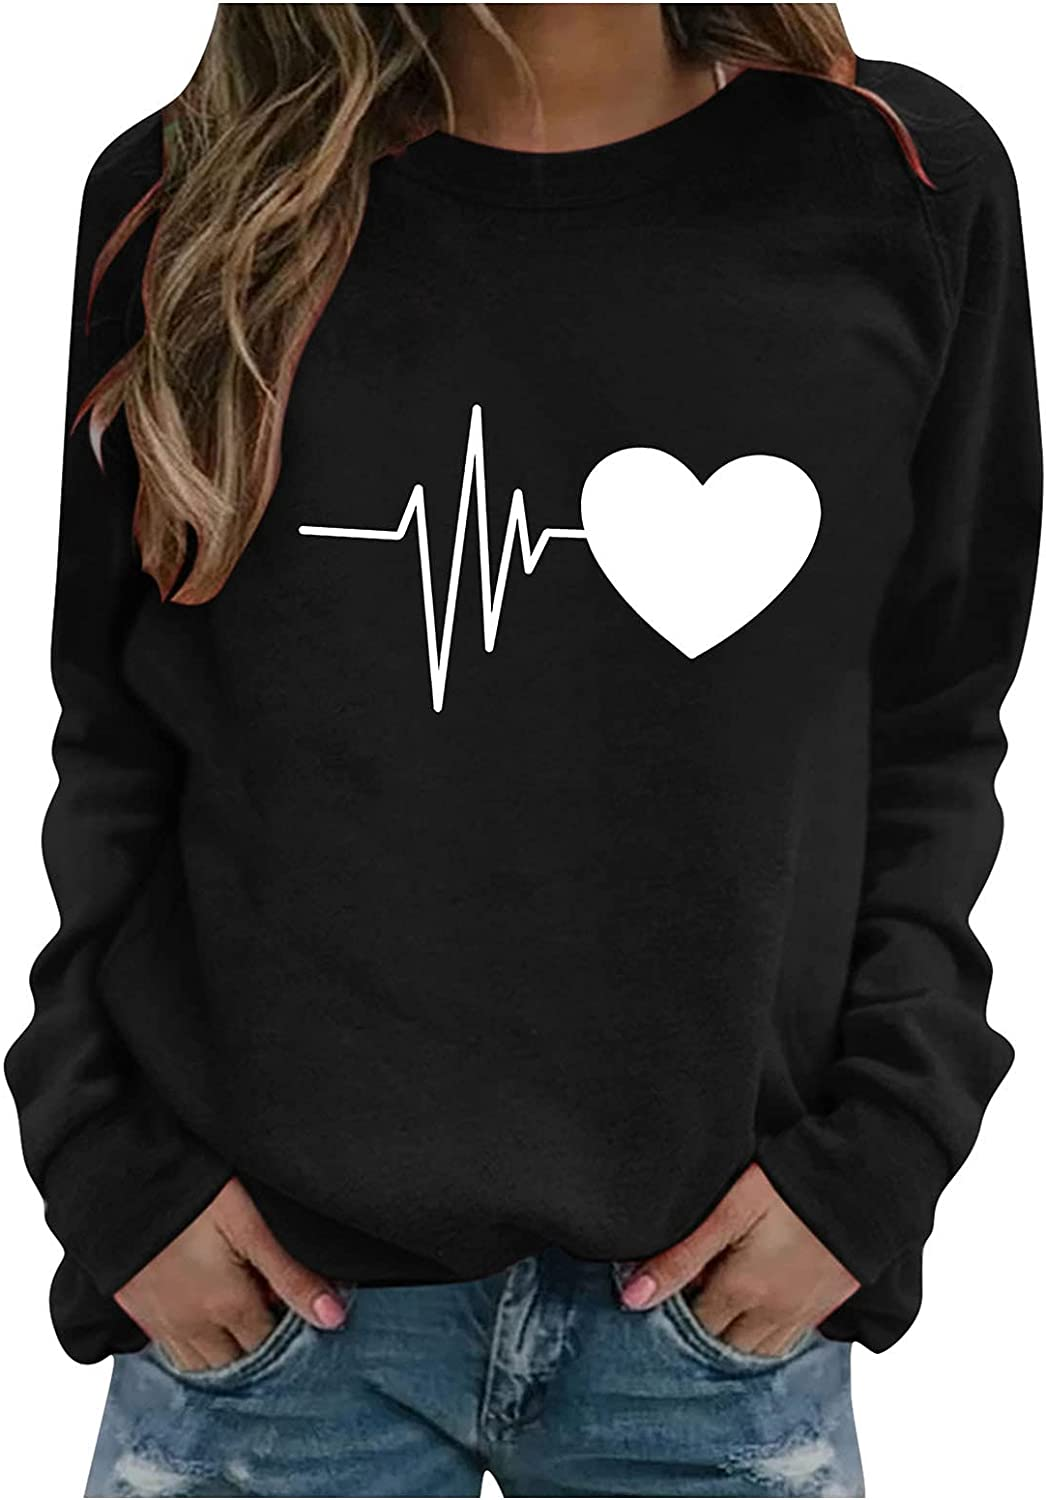 Fankle Womens Graphic Hoodie Butterfly Printed Sweatshirt Long Sleeve Casual Lightweight Hooded Pullover Tops